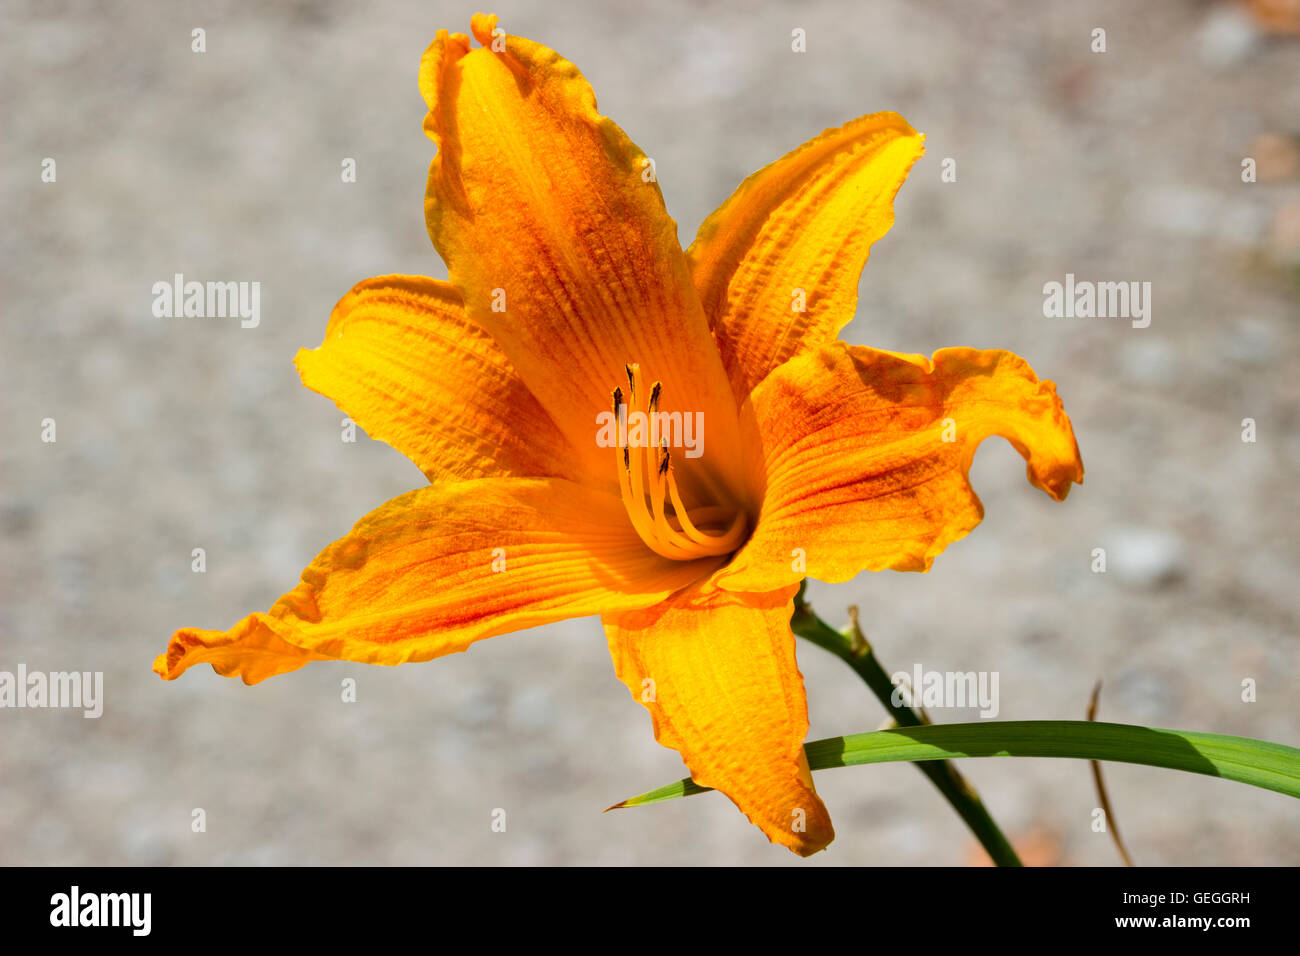 "Lebhaft gelb orange Trompete Blume von der Taglilie Hemerocallis ""Burning Daylight"" Stockbild"